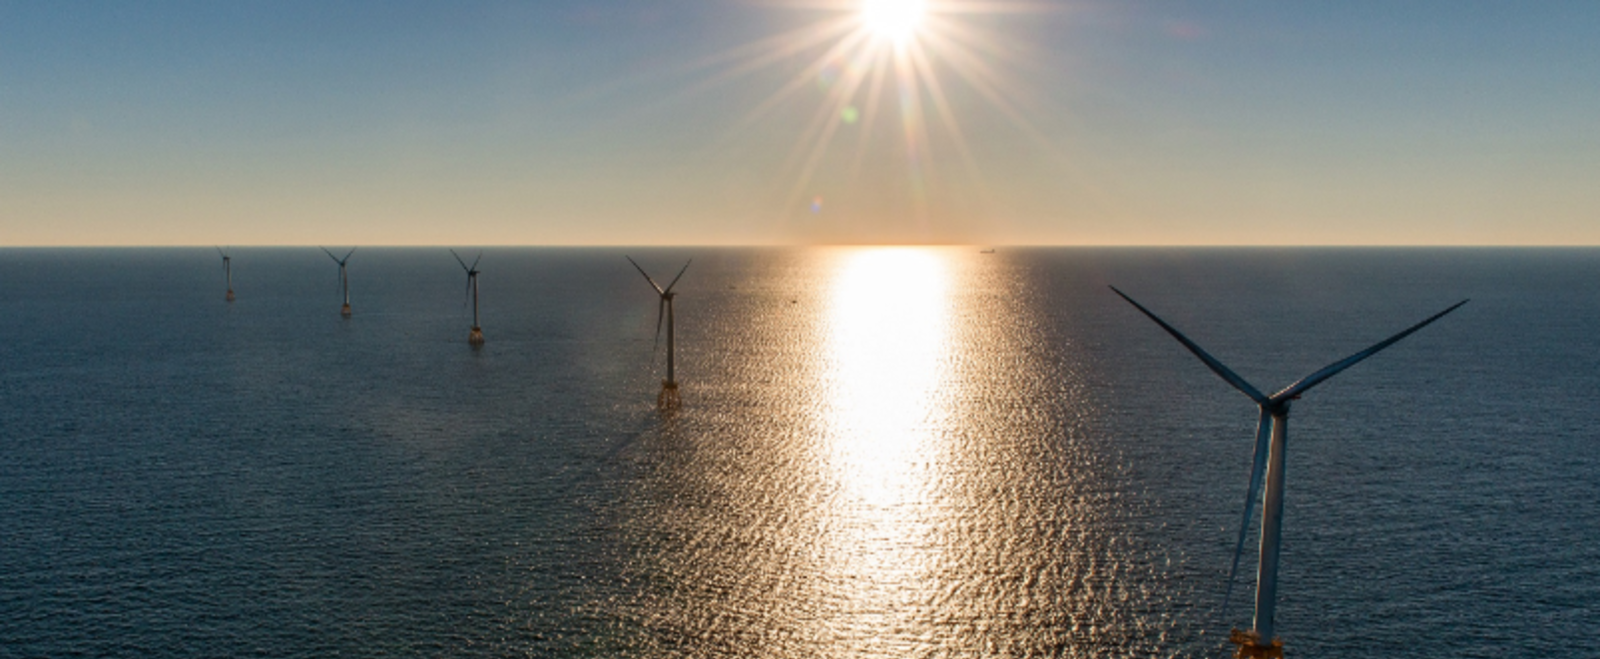 Block Island Wind Farm Sunrise